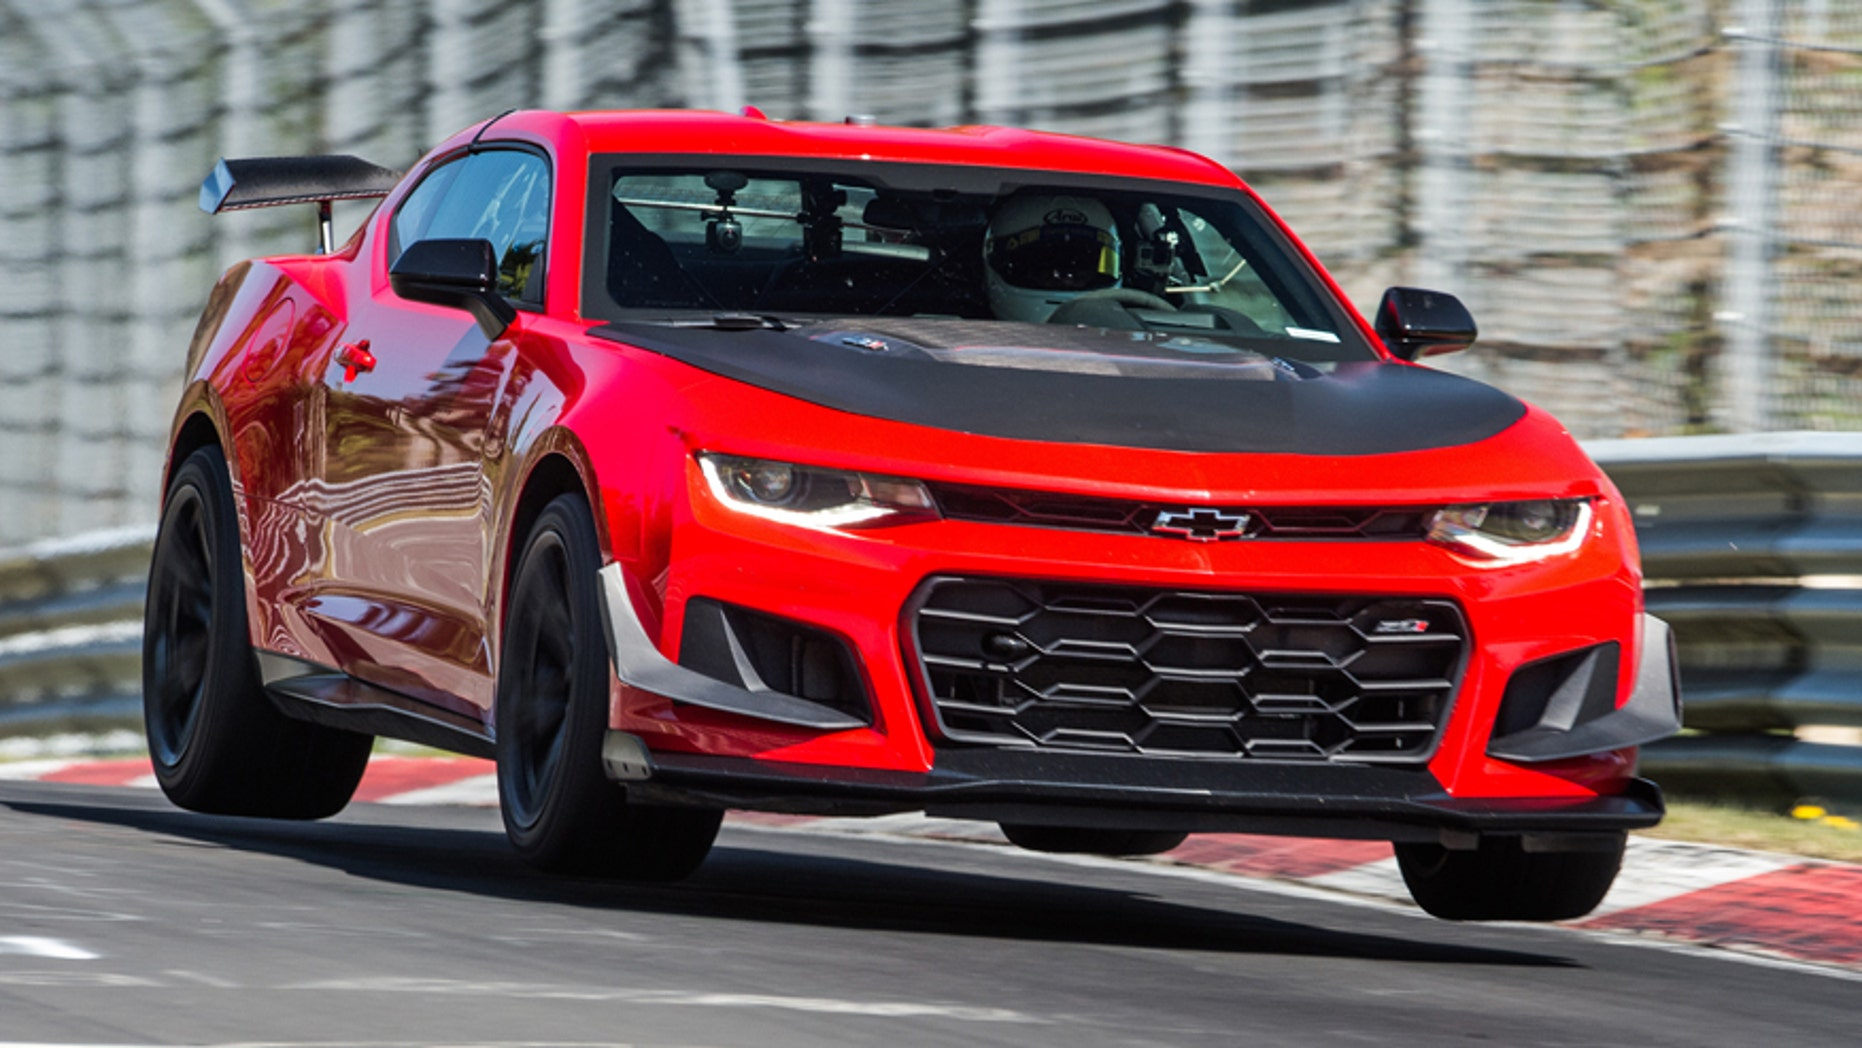 2018 Chevrolet Camaro Zl1 1le Is Faster Than Corvette Ferrari At The Nurburgring